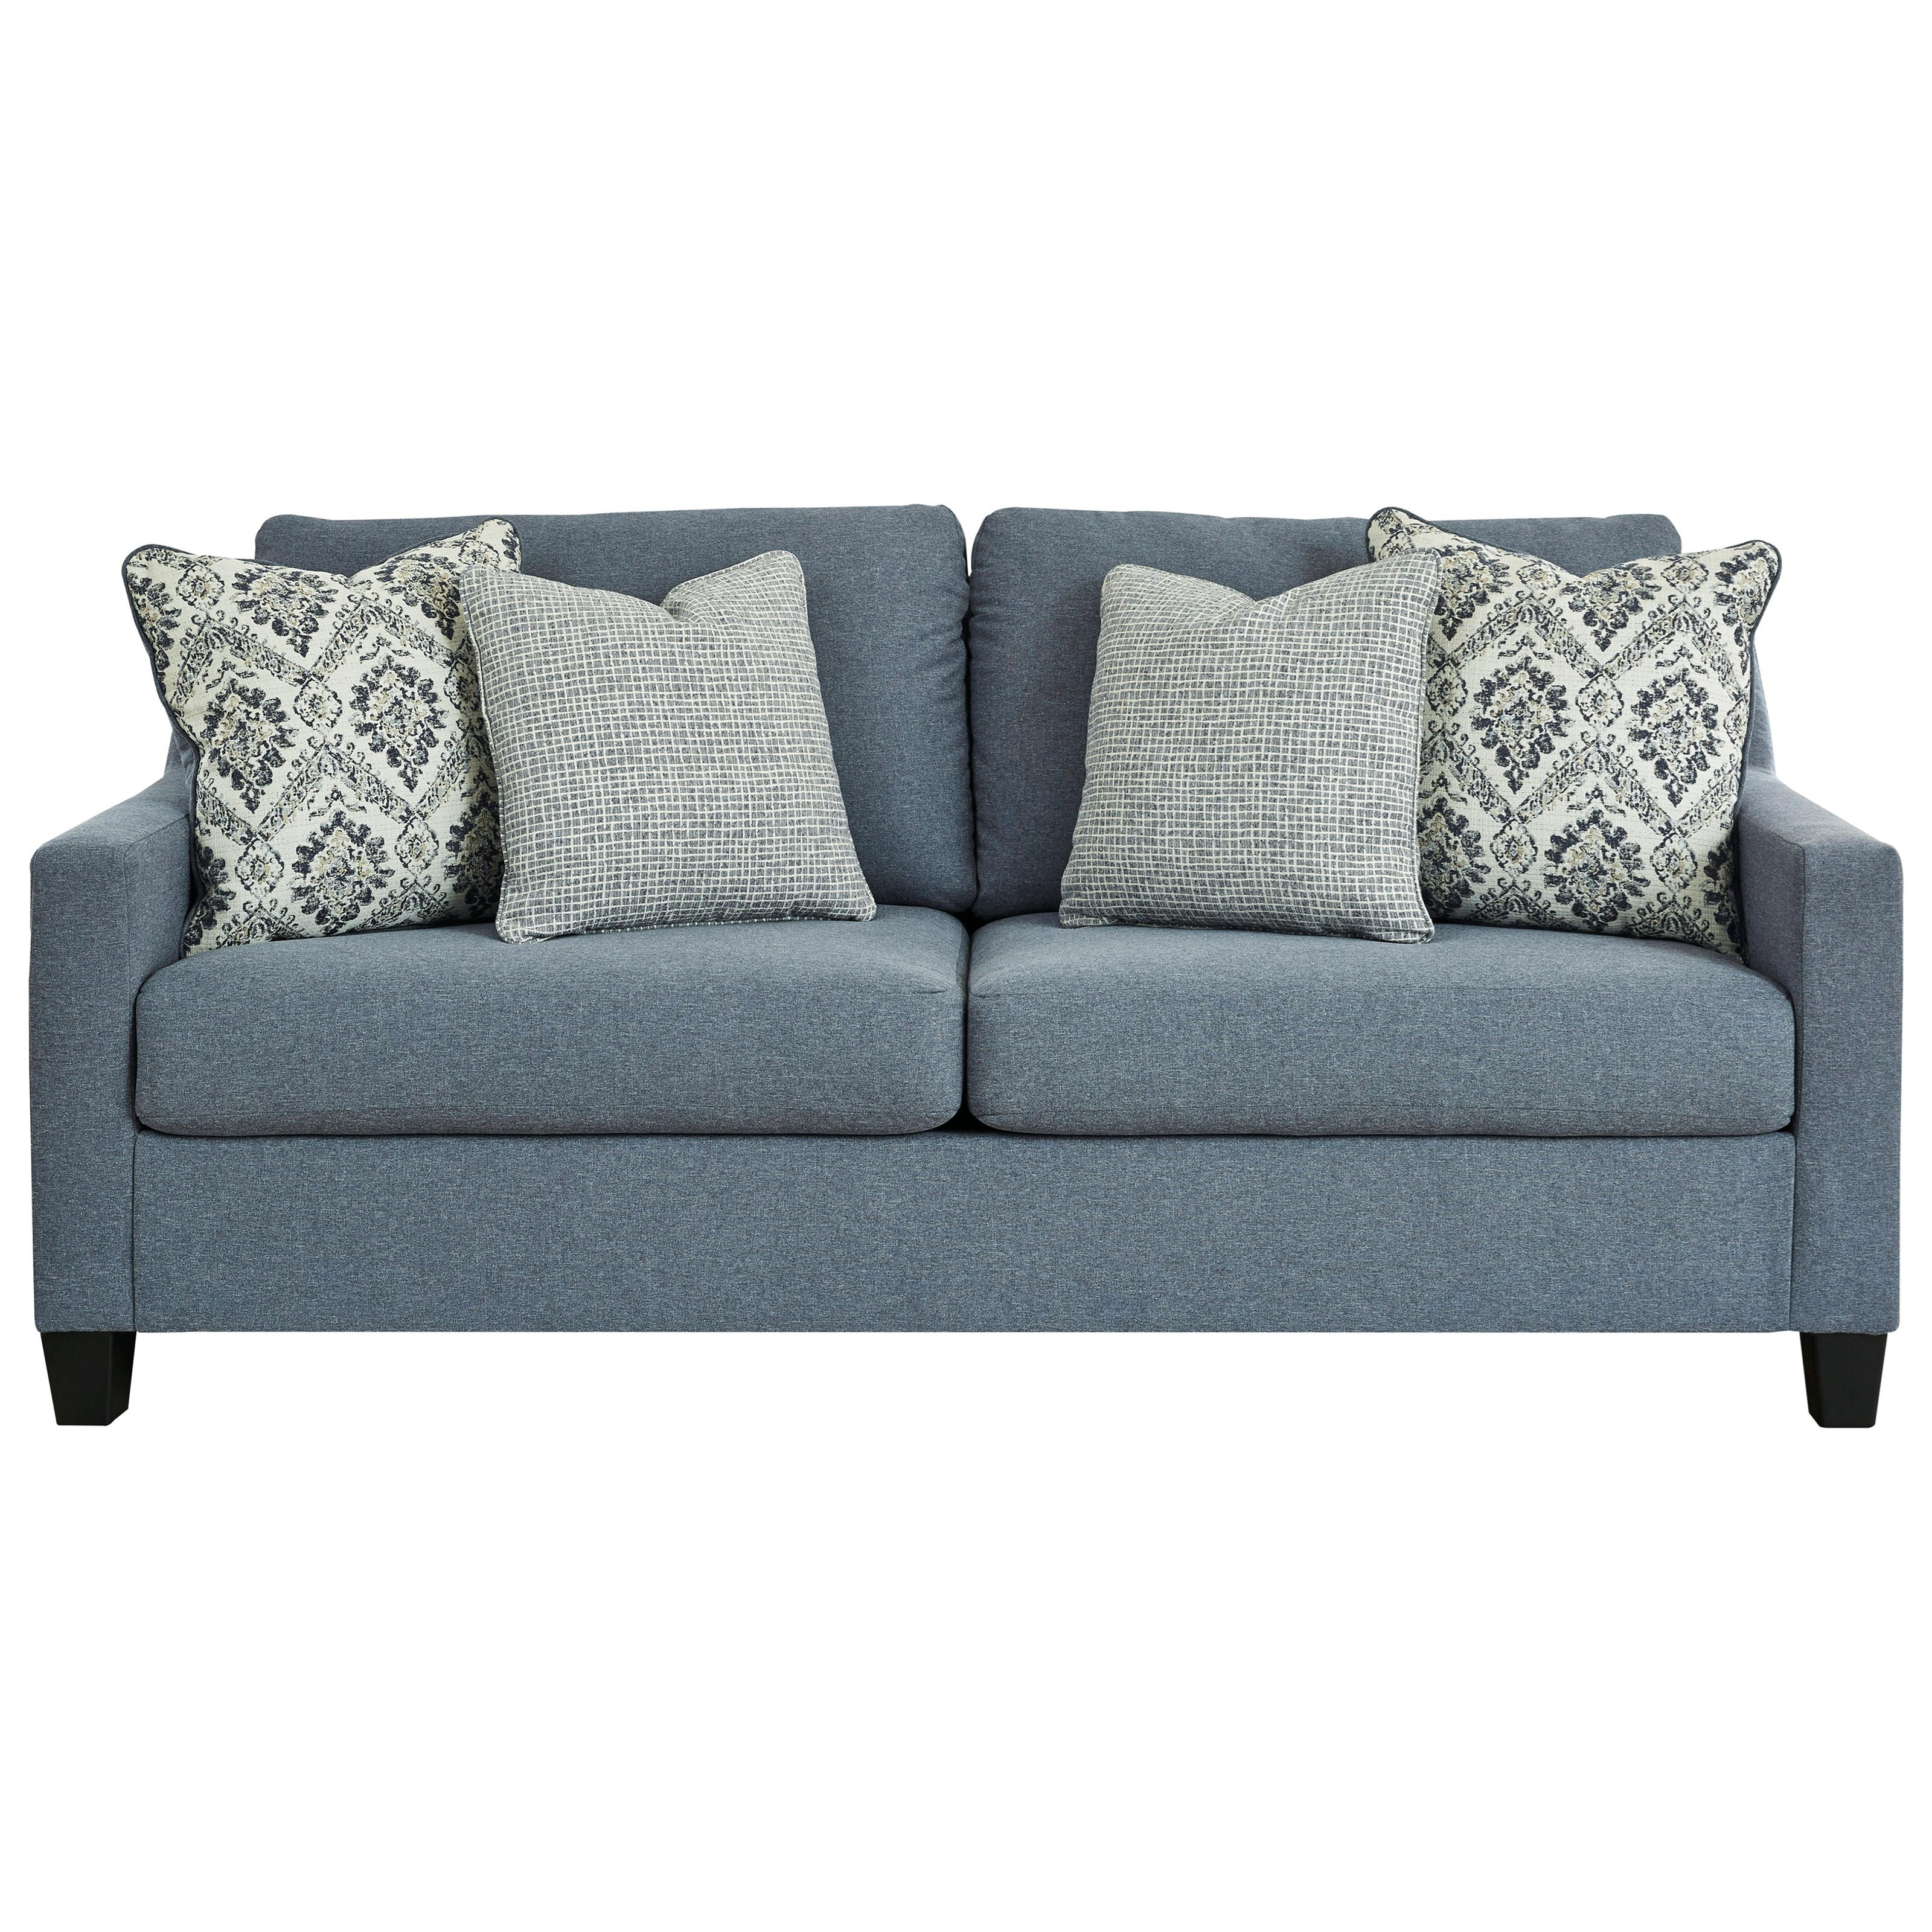 Lemly Sofa by Benchcraft at Beck's Furniture